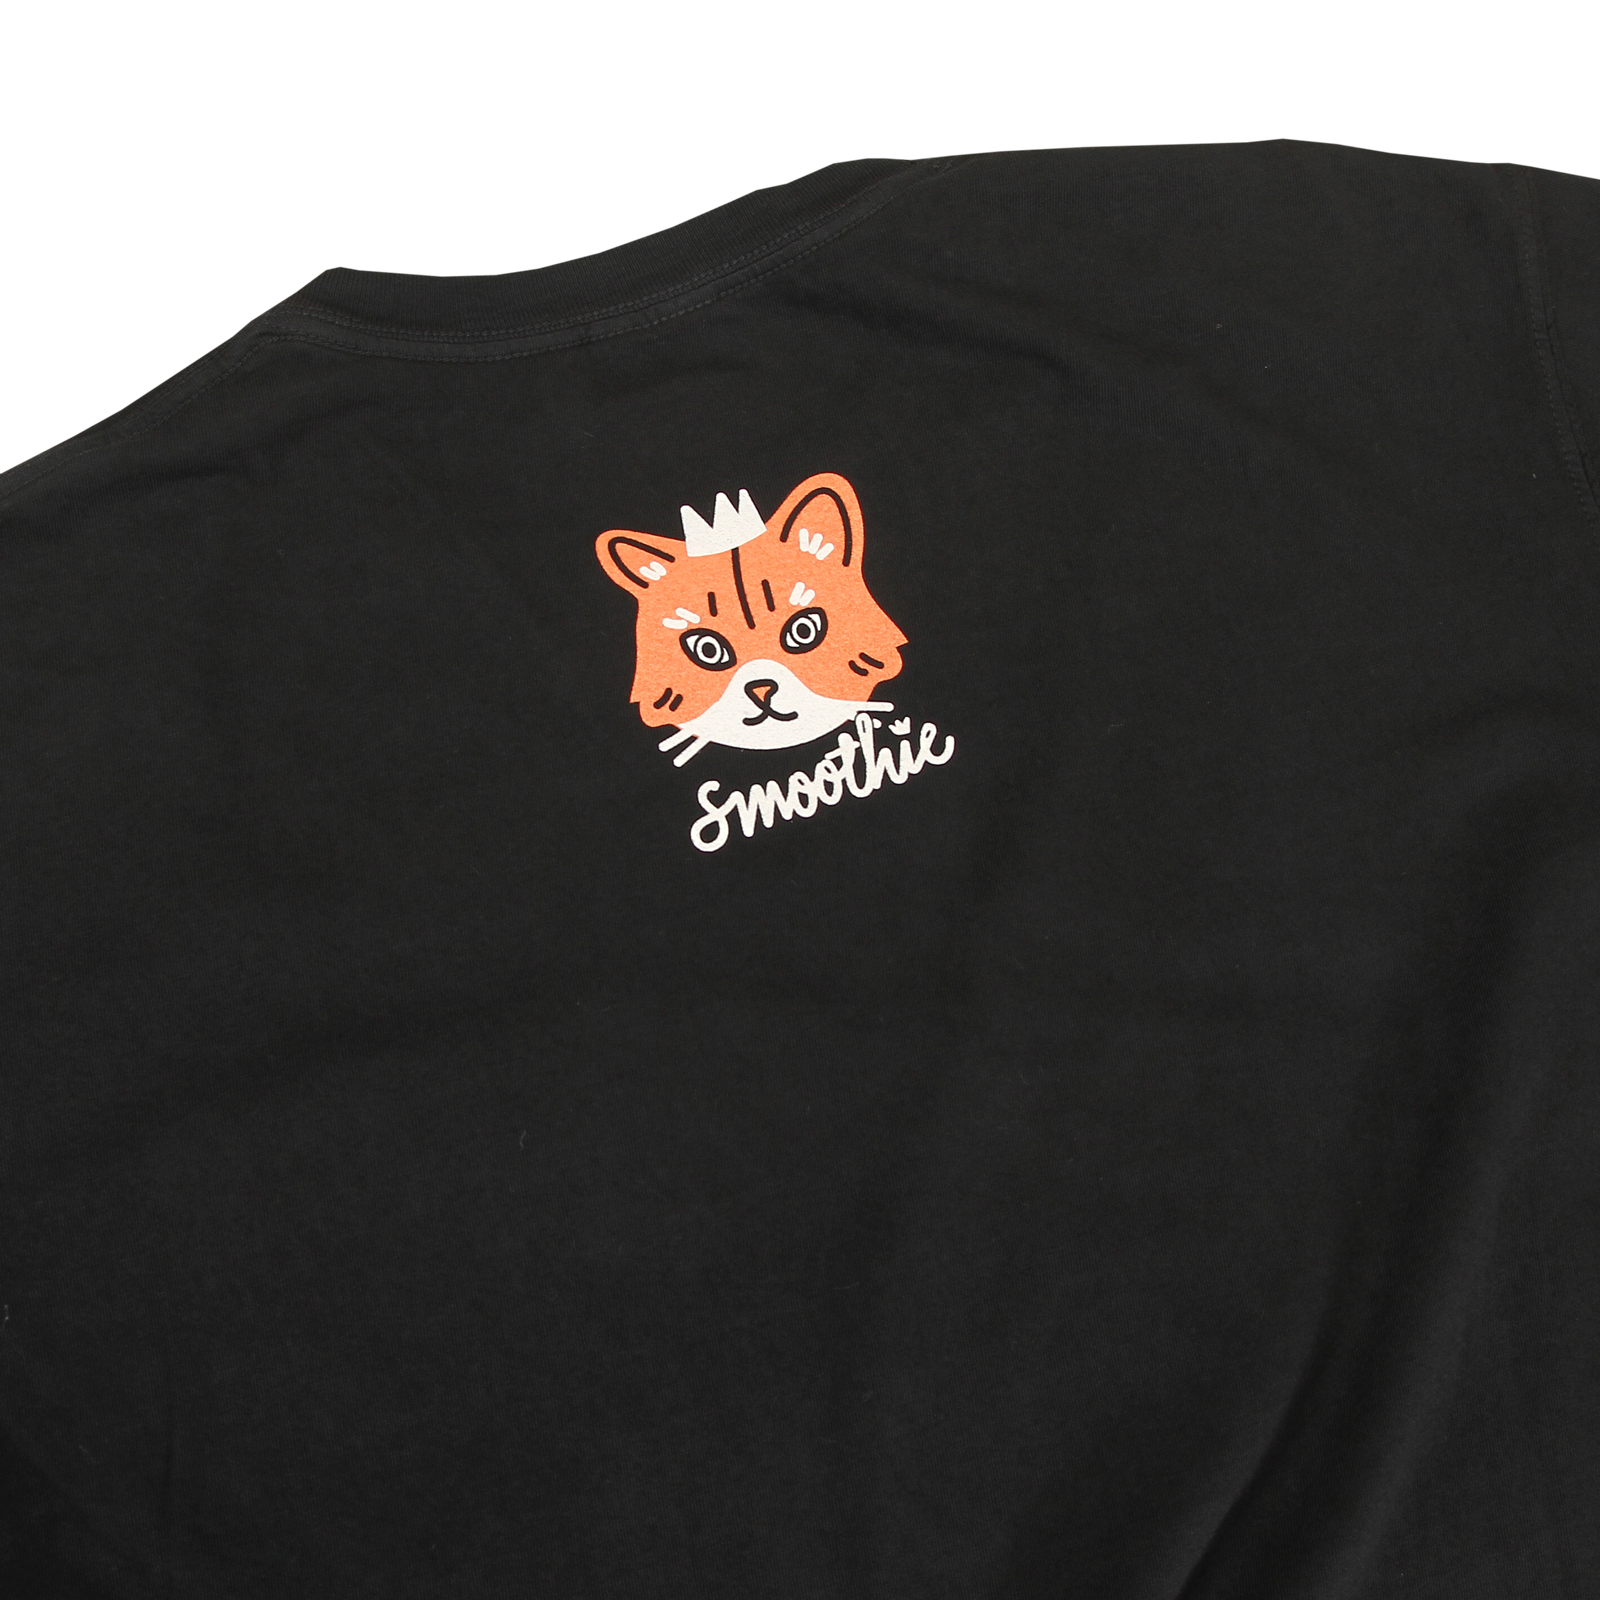 Smoothie - Yass Queen Pocket Tee